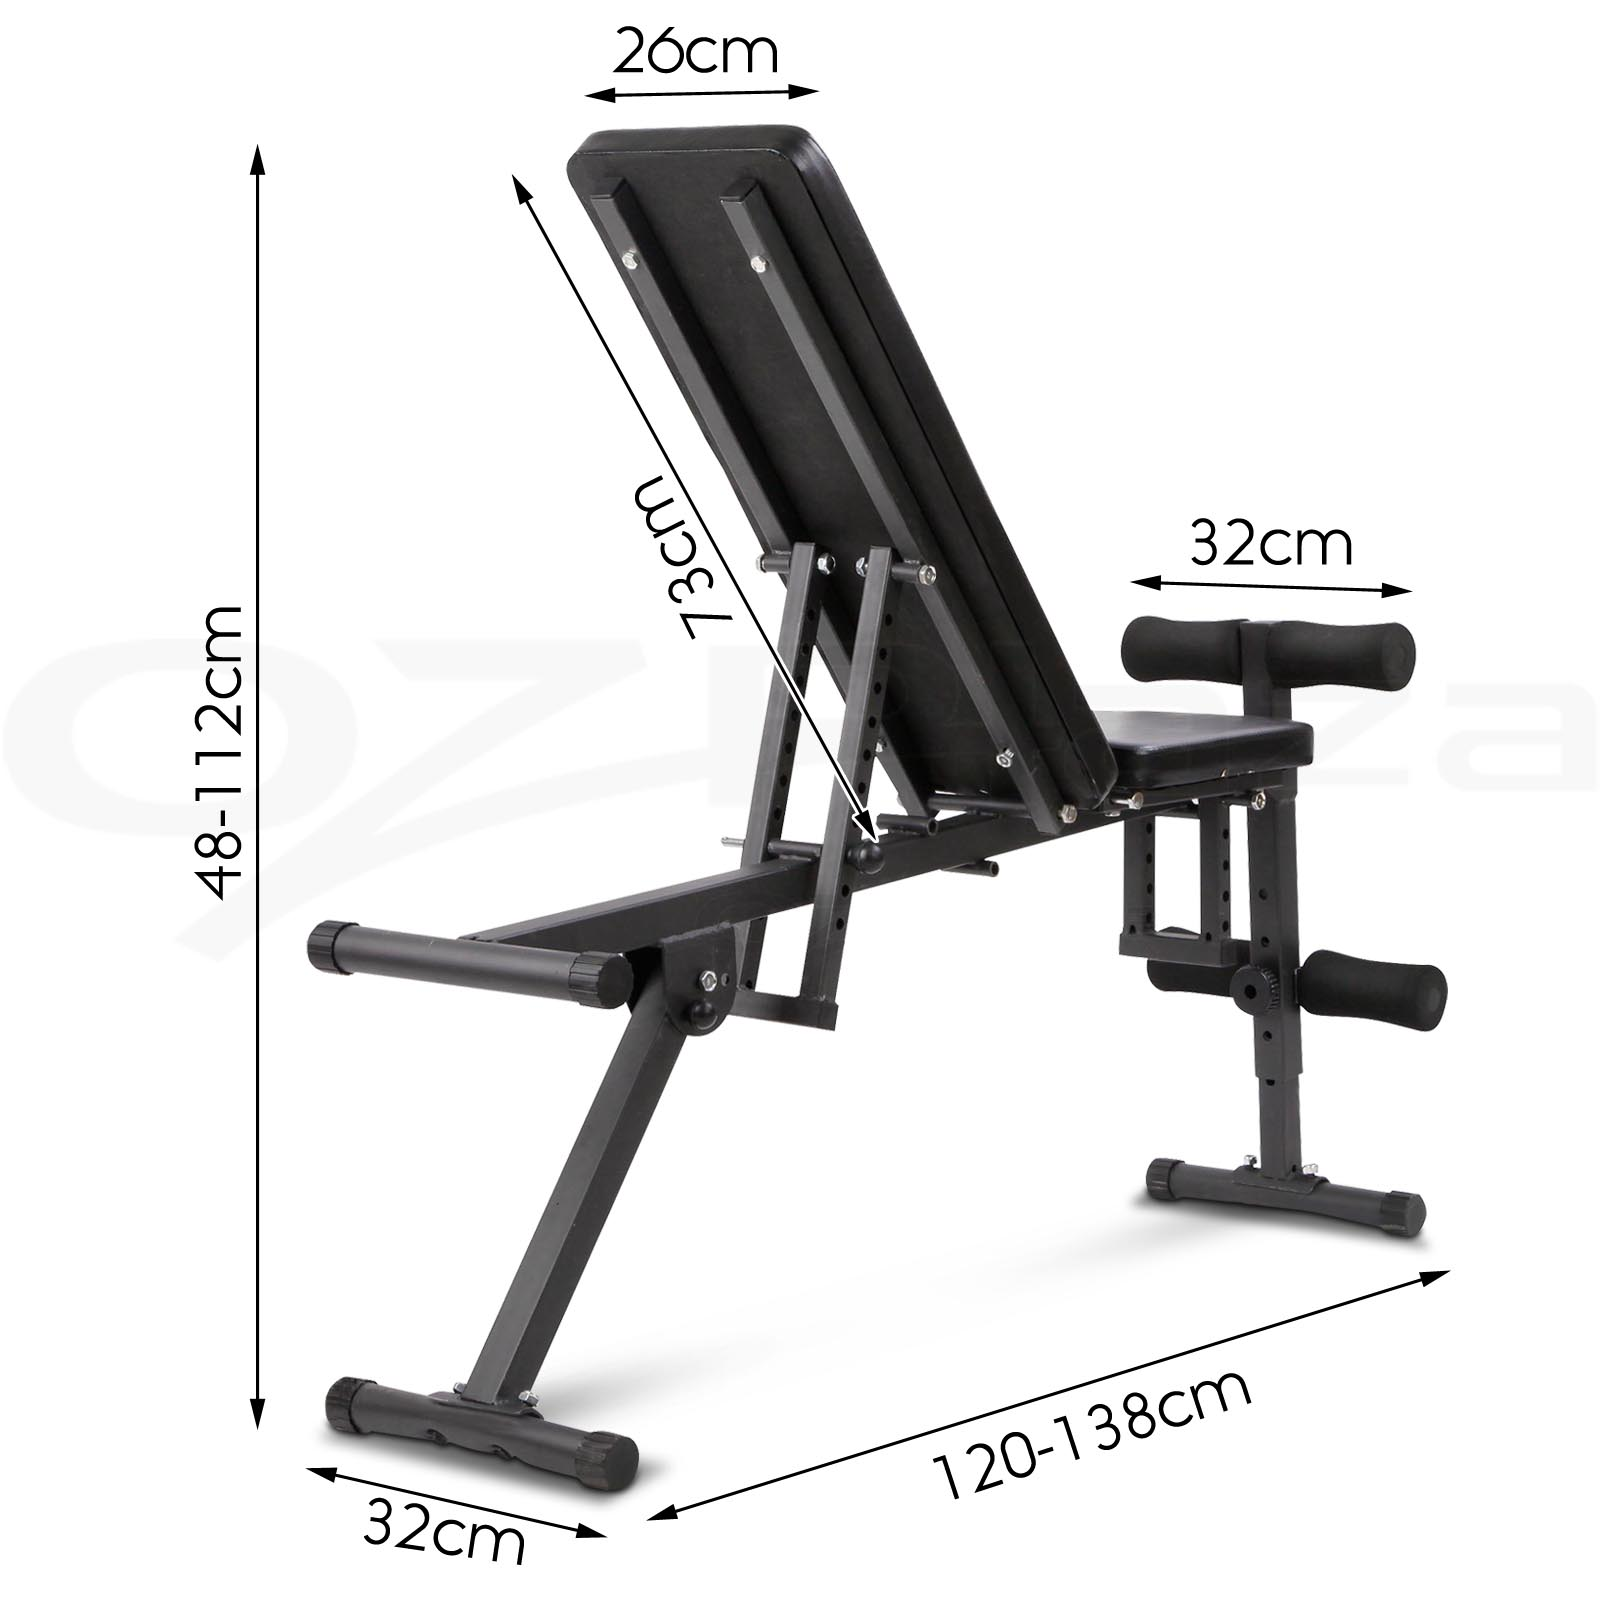 Adjustable weight fid bench flat incline decline home gym exercise fitness situp ebay - Weight bench incline decline ...